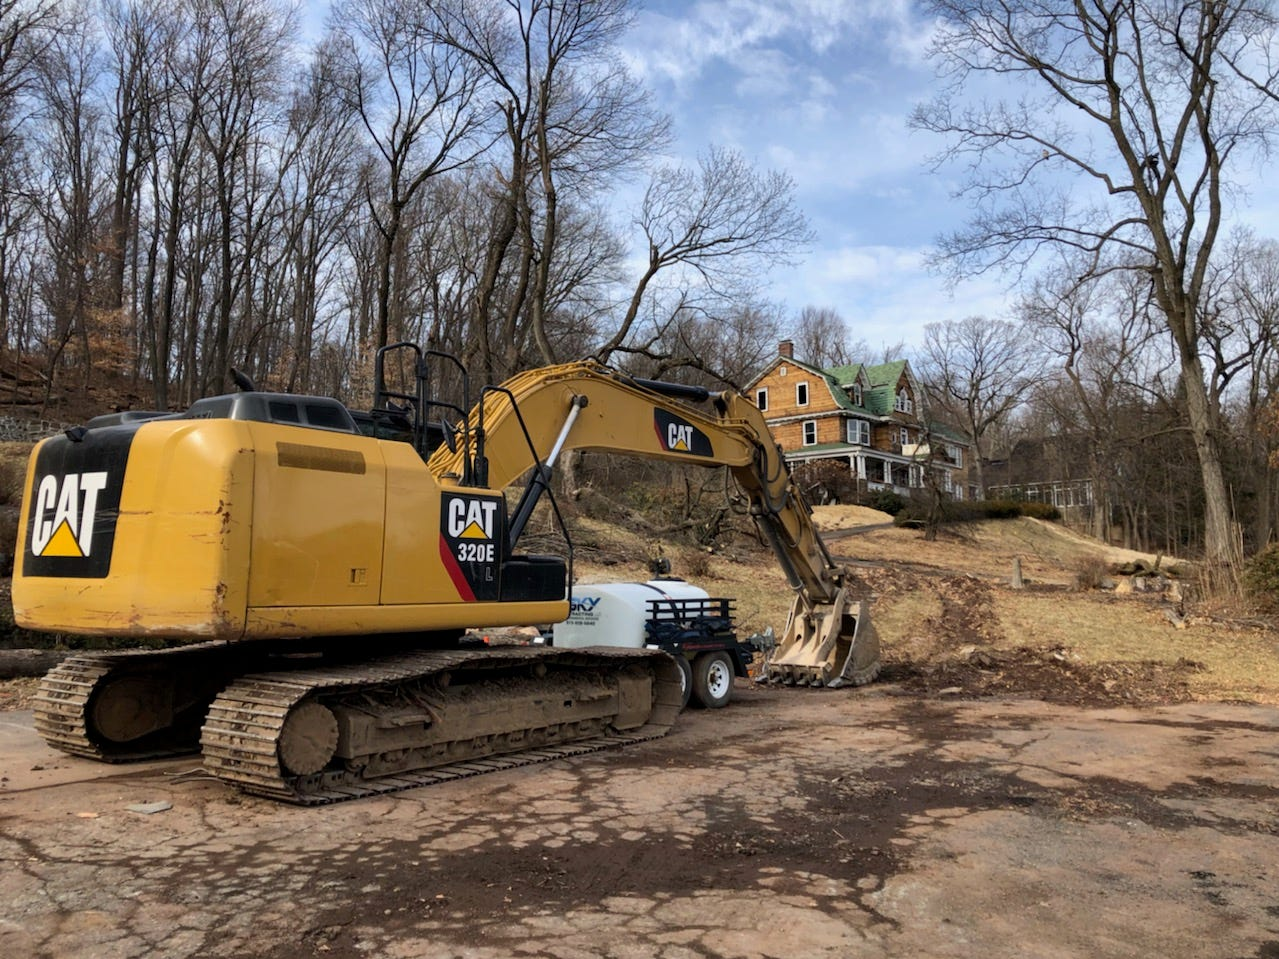 A construction vehicle seems pointed toward 172 Lloyd Road, a Montclair historic mansion also owned by 41 Underhill LLC, which demolished the home at that address this weekend. February 10, 2019.